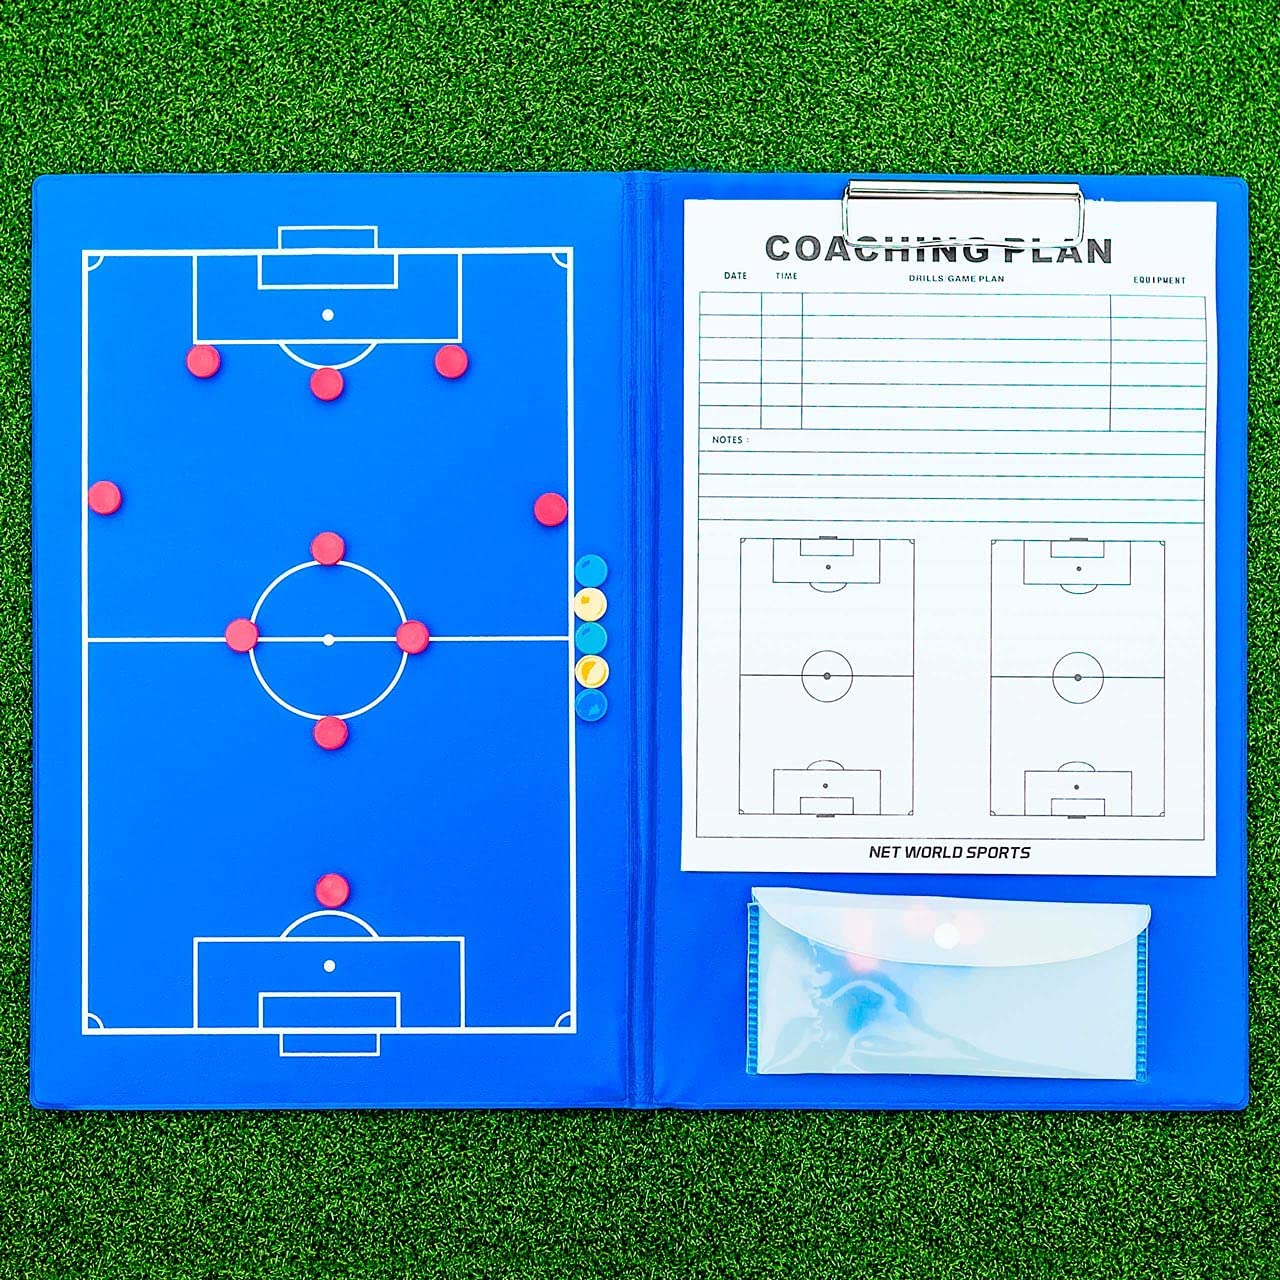 FORZA A4 Magnetic Soccer Tactic Max 53% OFF Coa Spring new work Folder Professional